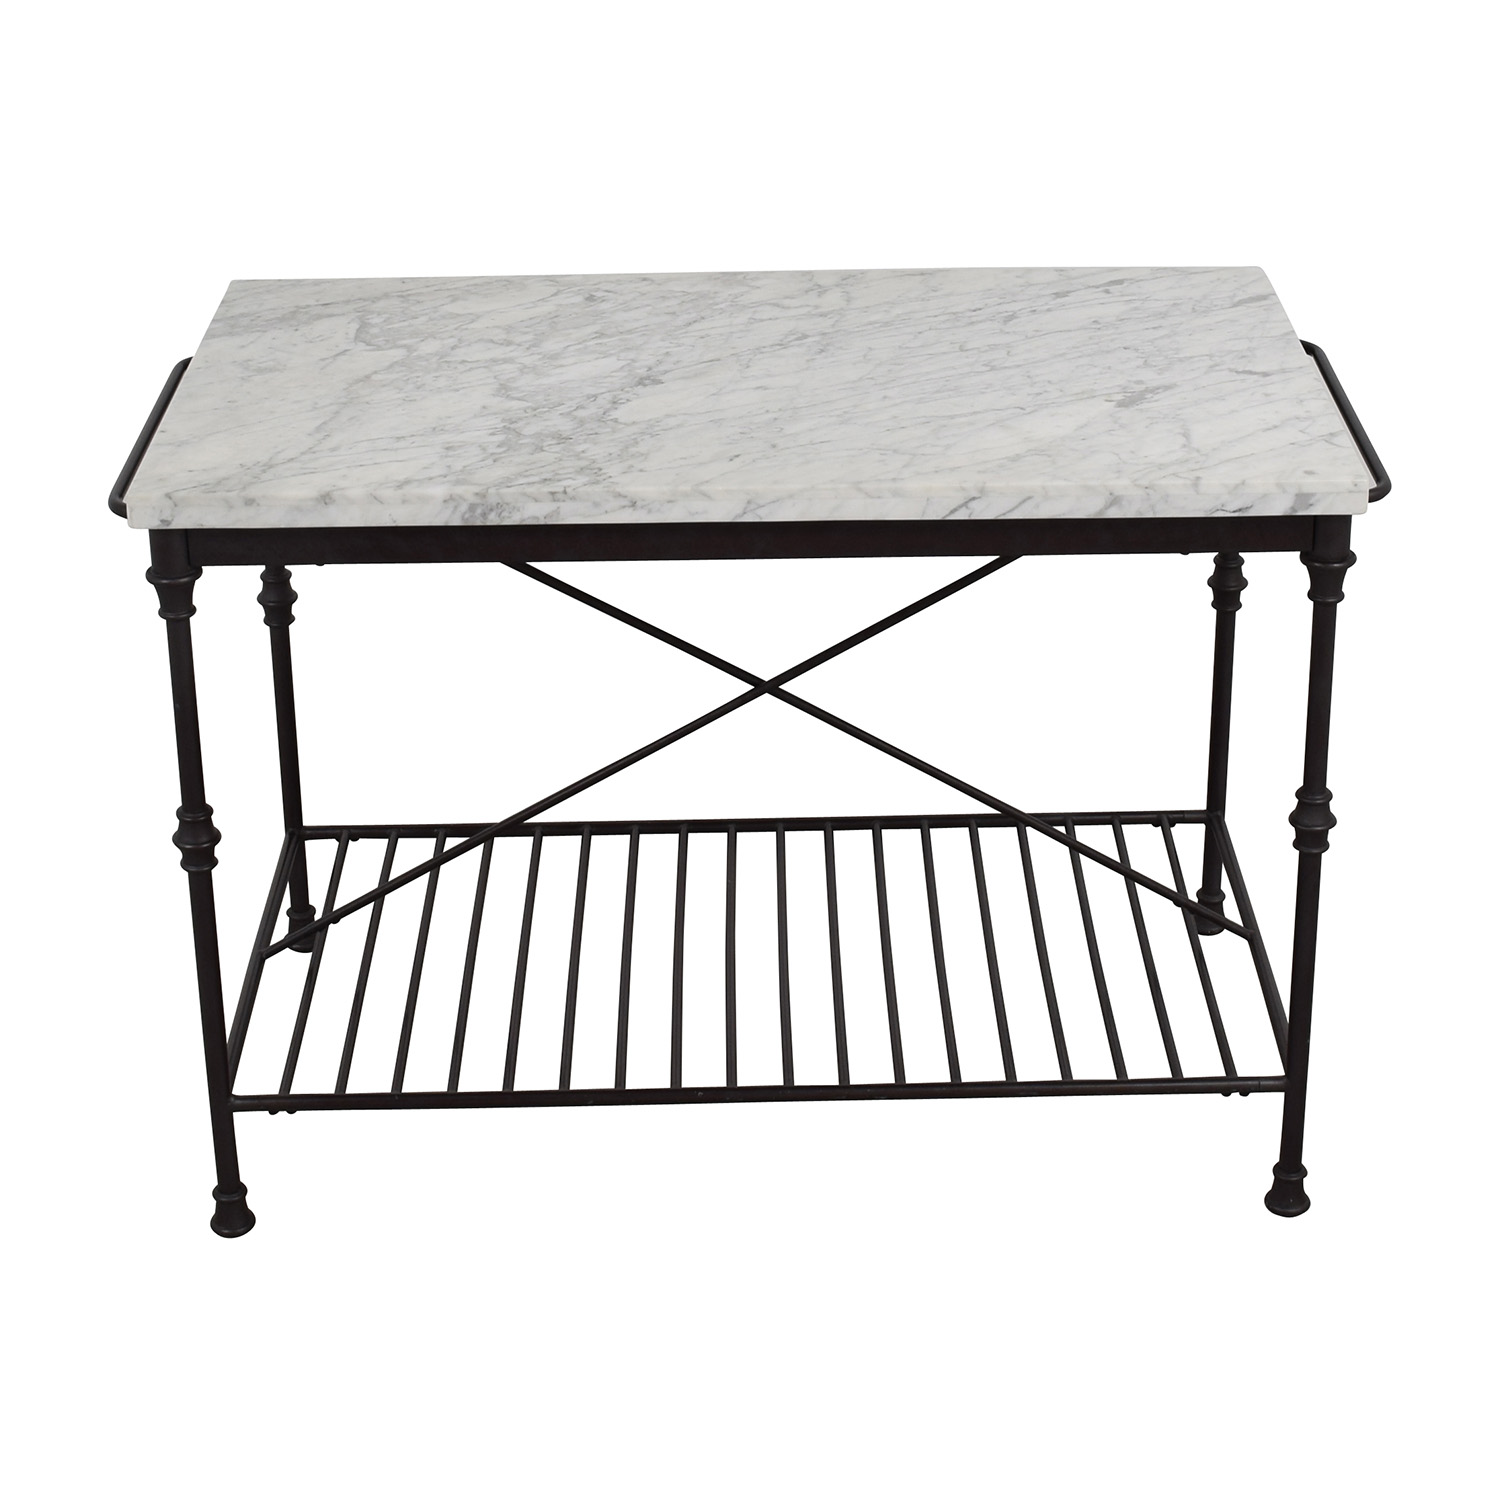 61% OFF - Crate & Barrel Crate & Barrel French Kitchen Island / Tables